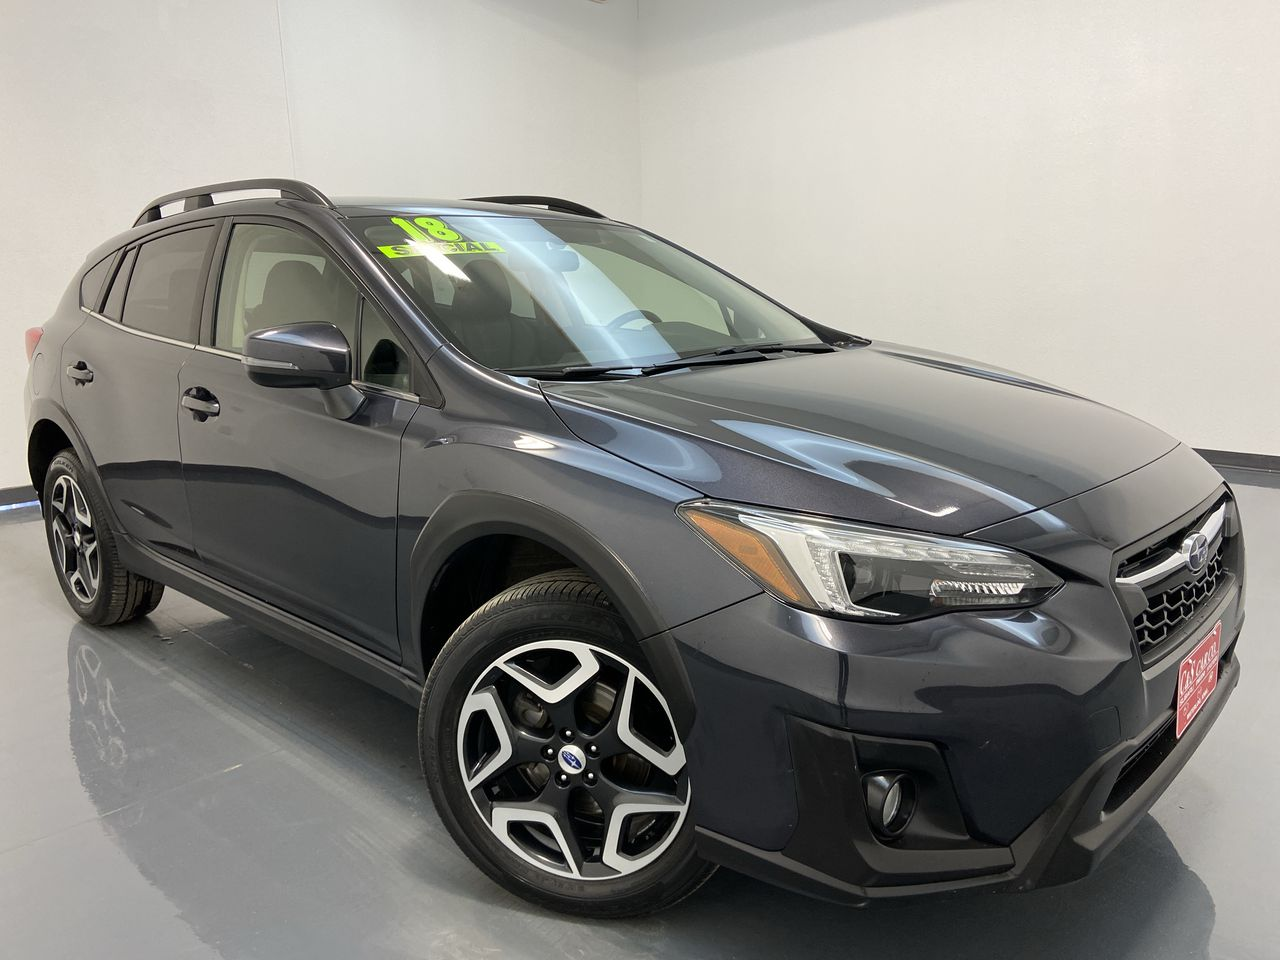 2018 Subaru Crosstrek 4D Wagon at  - SB9265A  - C & S Car Company